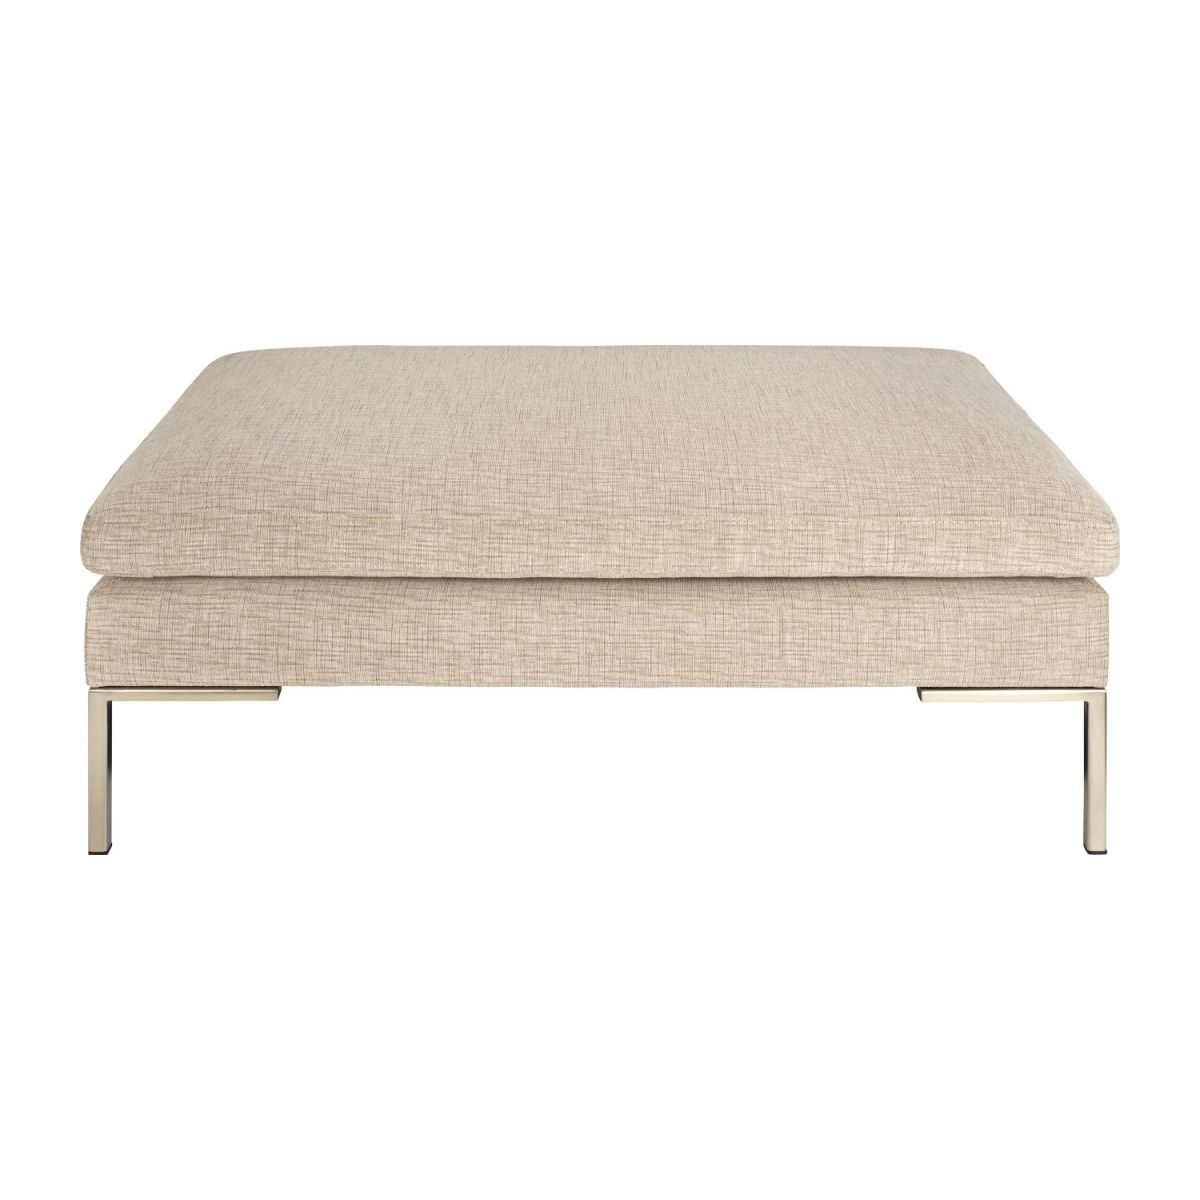 Footstool in Ancio fabric, nature n°2